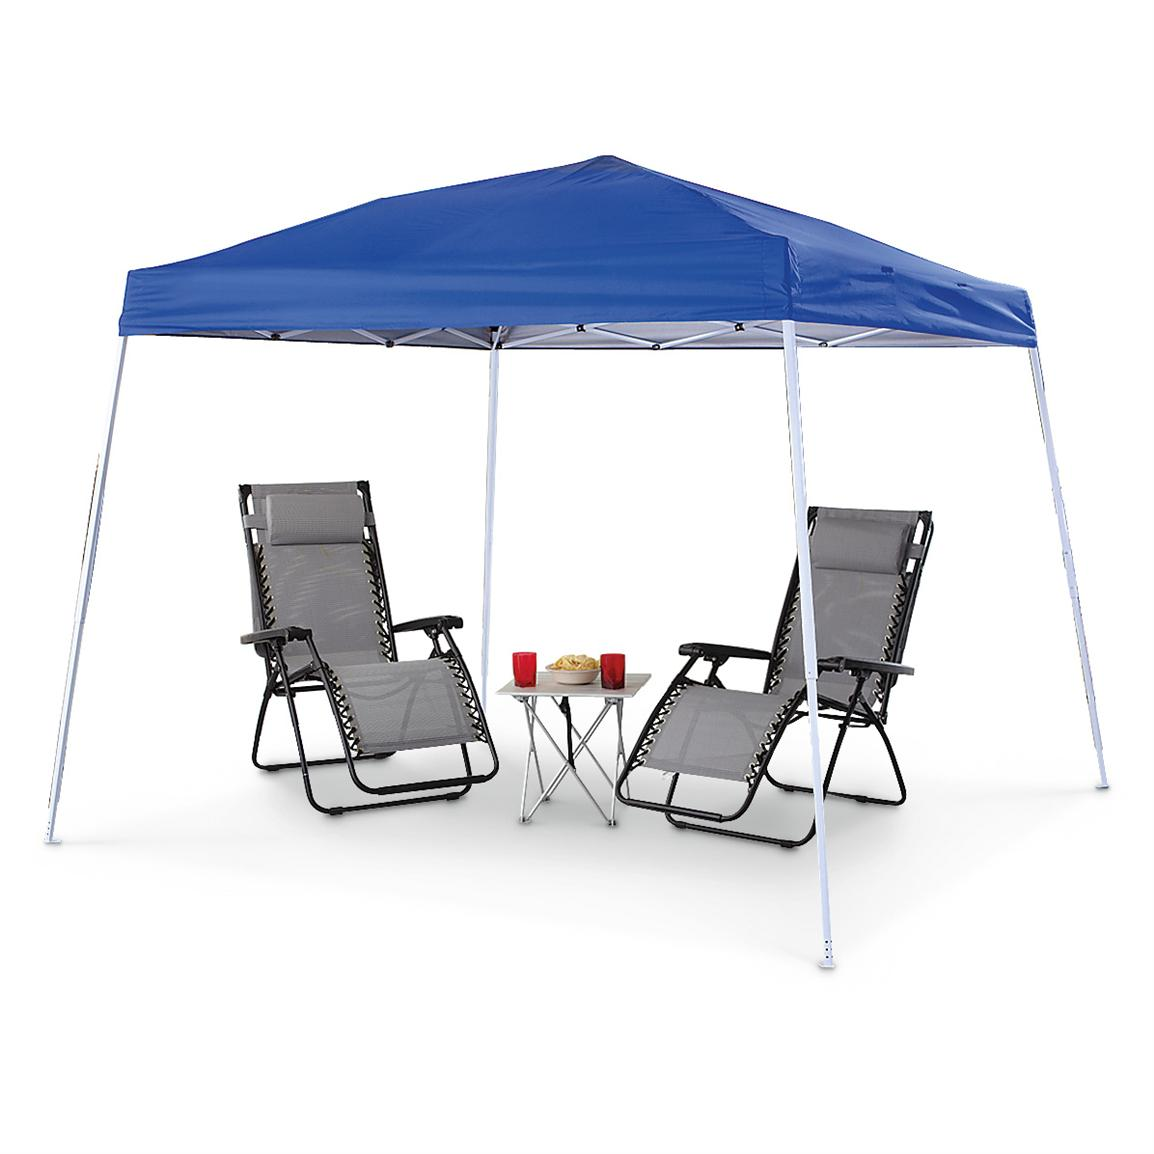 Guide Gear 10 foot x 10 foot Instant Pop Up Canopy